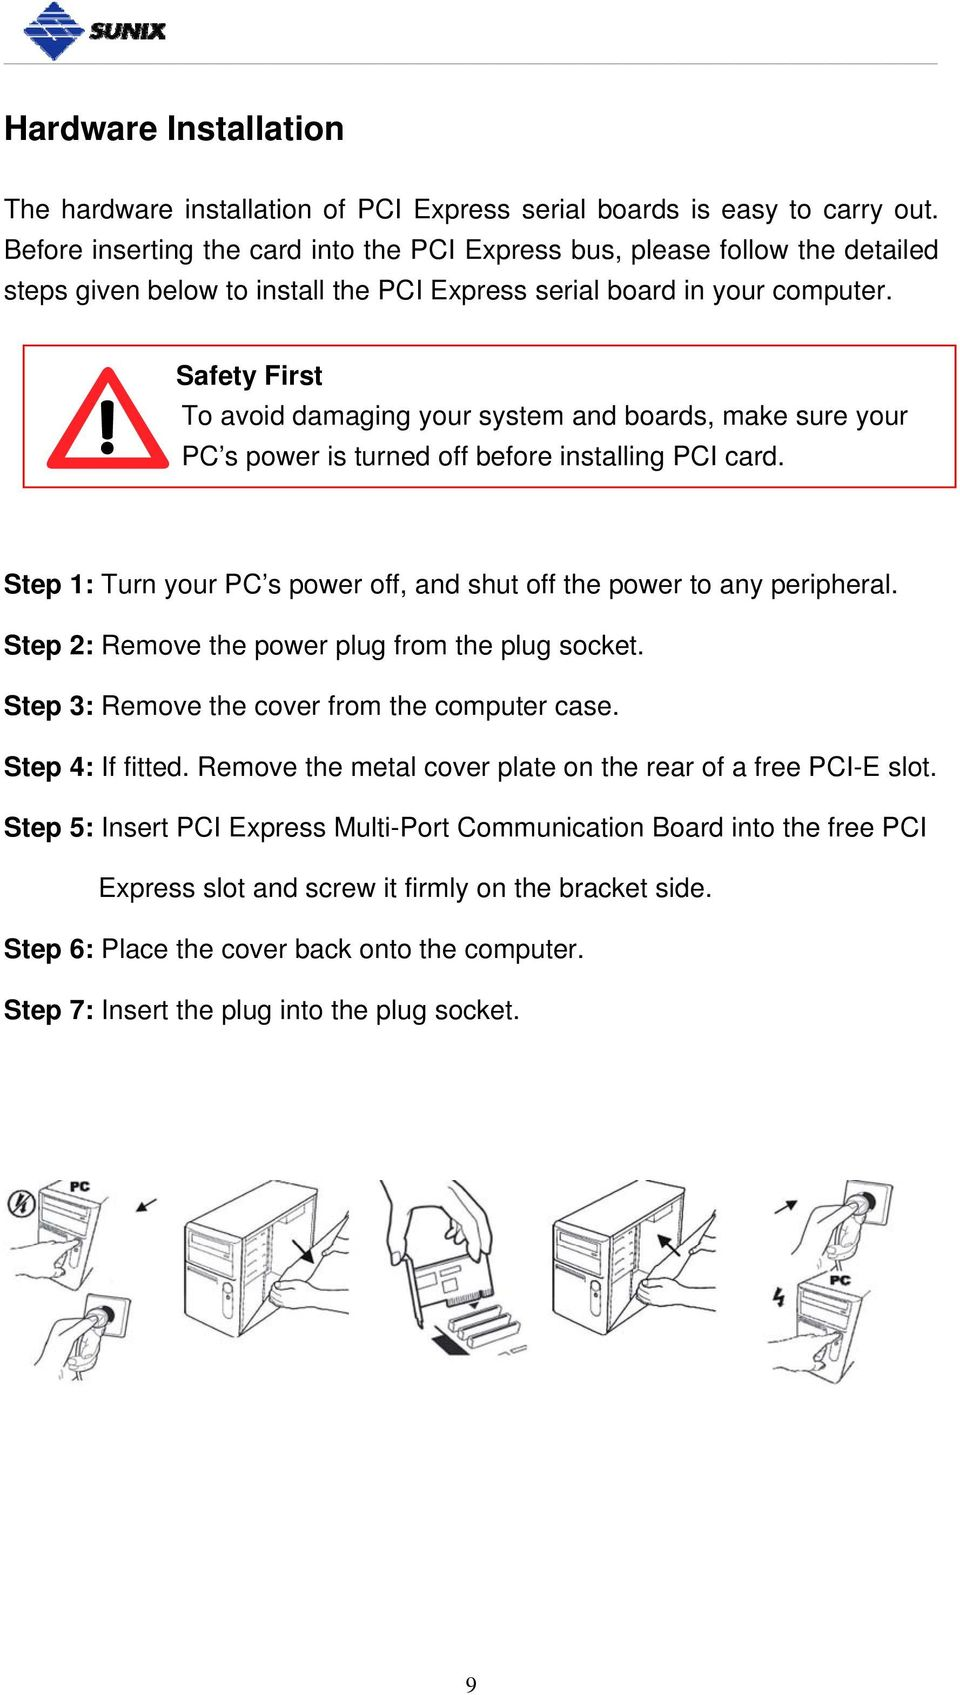 Safety First To avoid damaging your system and boards, make sure your PC s power is turned off before installing PCI card. Step 1: Turn your PC s power off, and shut off the power to any peripheral.